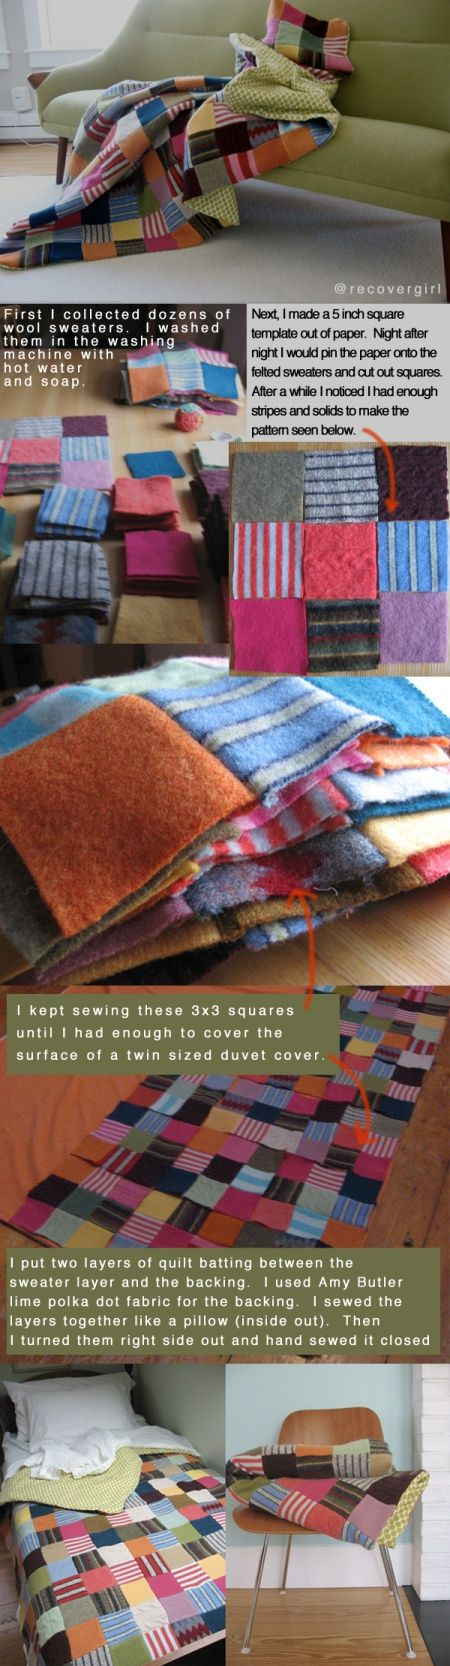 sweater quilt, step by step.